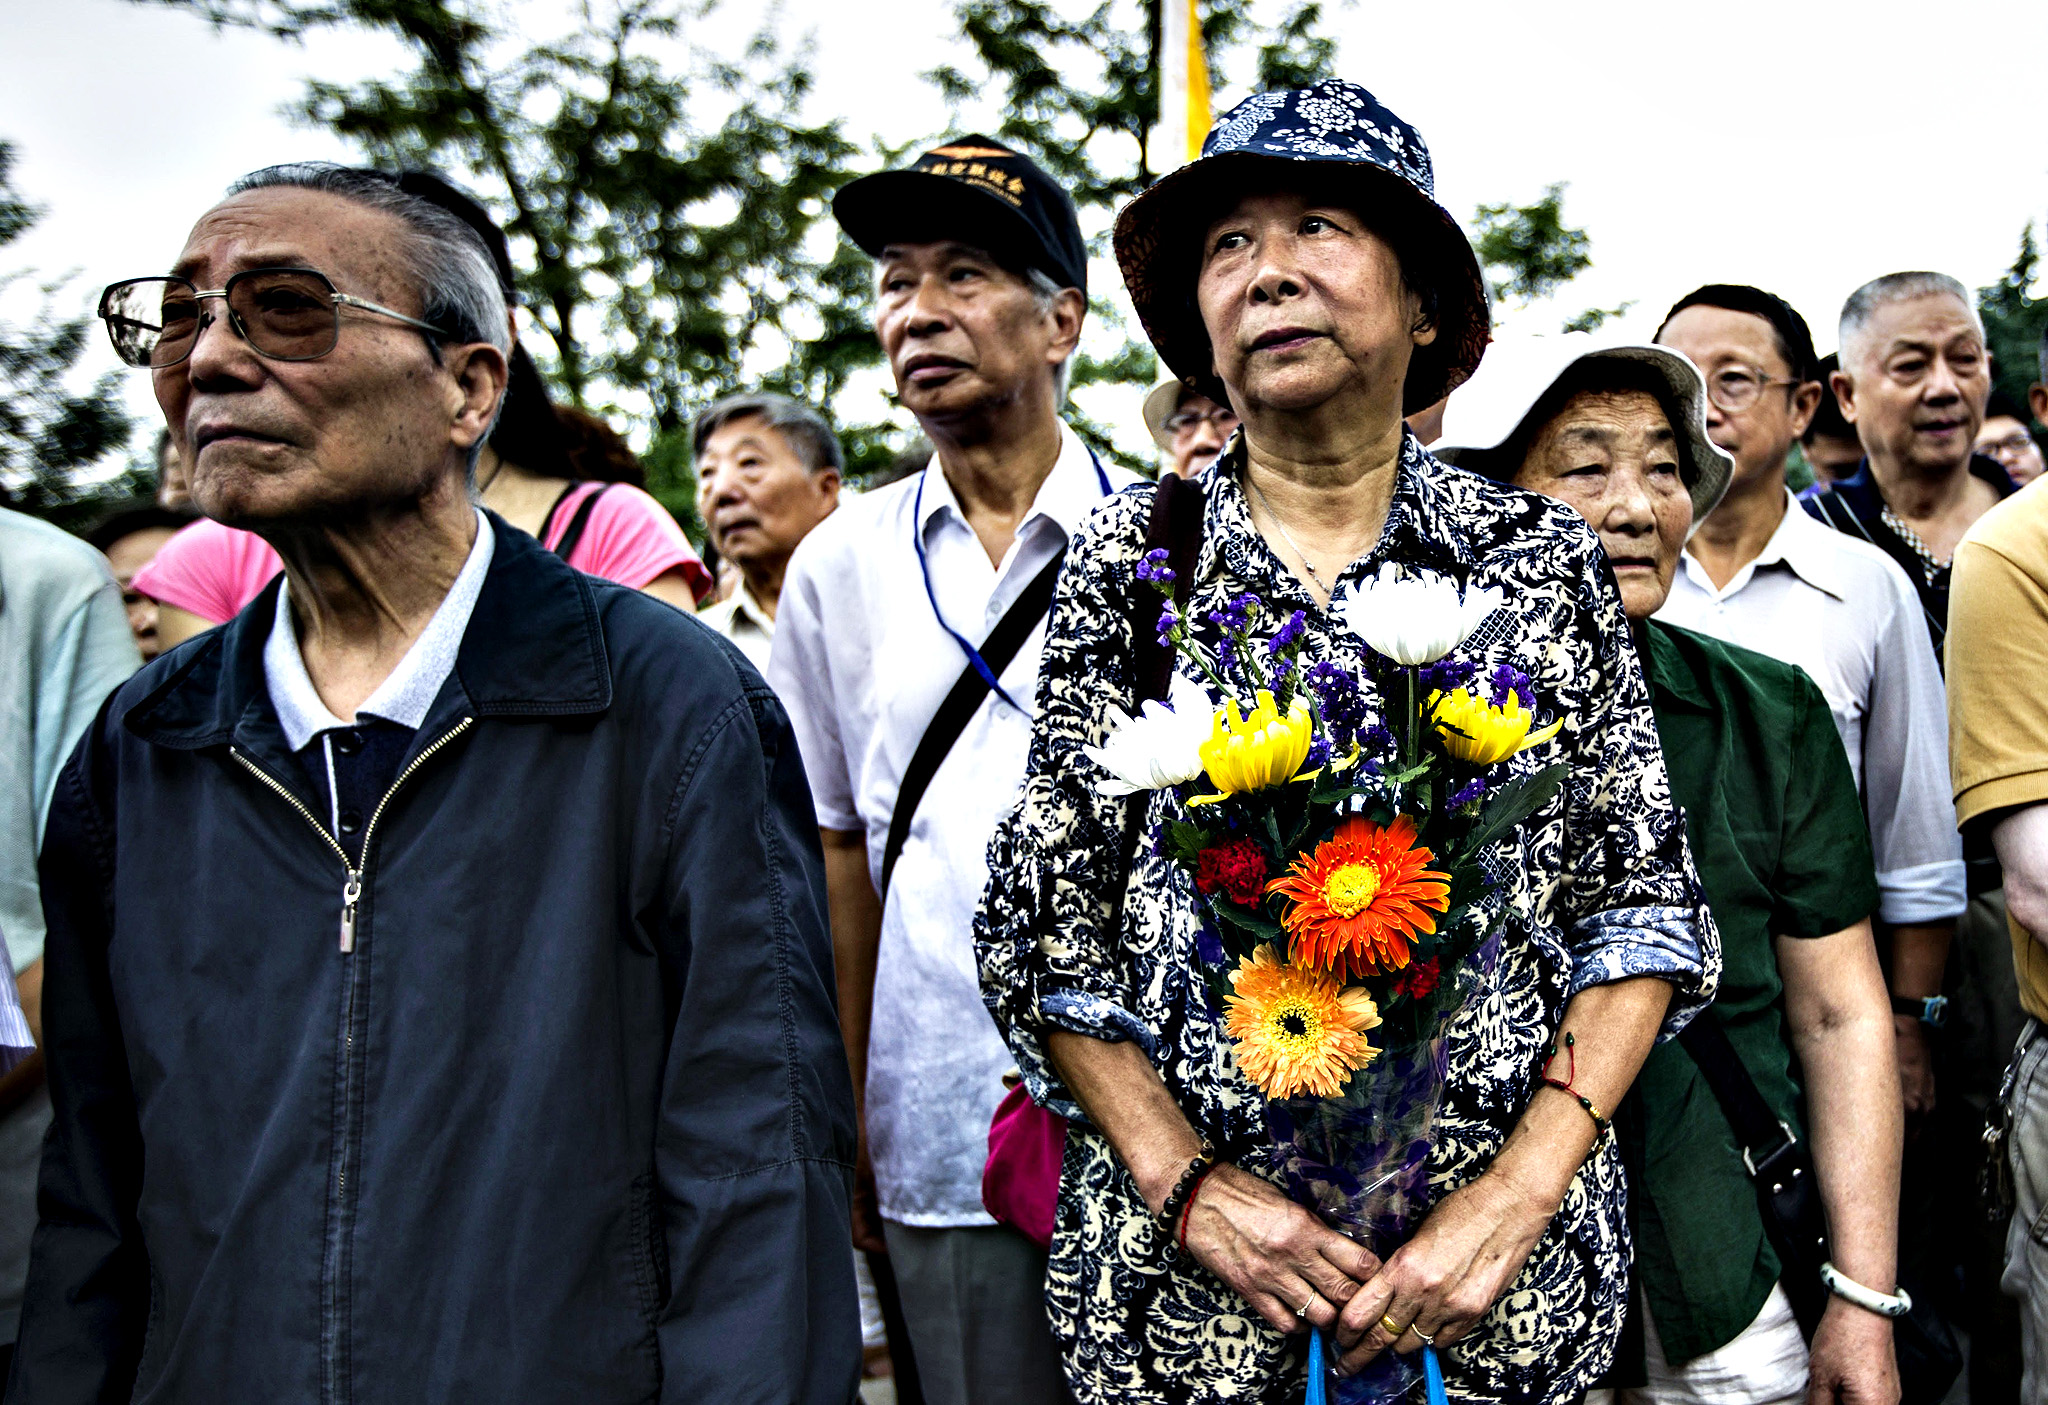 People gather to pay tribute to people who died in battles against Japan during World War II at the Aviation Martyr Memorial to commemorate the 69th anniversary of victory over Japan in World War II in Nanjing, east China's Jiangsu province on September 3, 2014. Chinese President Xi Jinping and all six other members of the Politburo Standing Committee, the country's most powerful body, made a rare public appearance on September 3 to commemorate 69 years since Japan's surrender at the end of World War II. The ceremony was the first since Beijing earlier this year declared September 3 as a national day to mark Japan's defeat -- it signed the formal surrender on board the USS Missouri in Tokyo Bay on September 2, 1945, with China celebrating the following day.